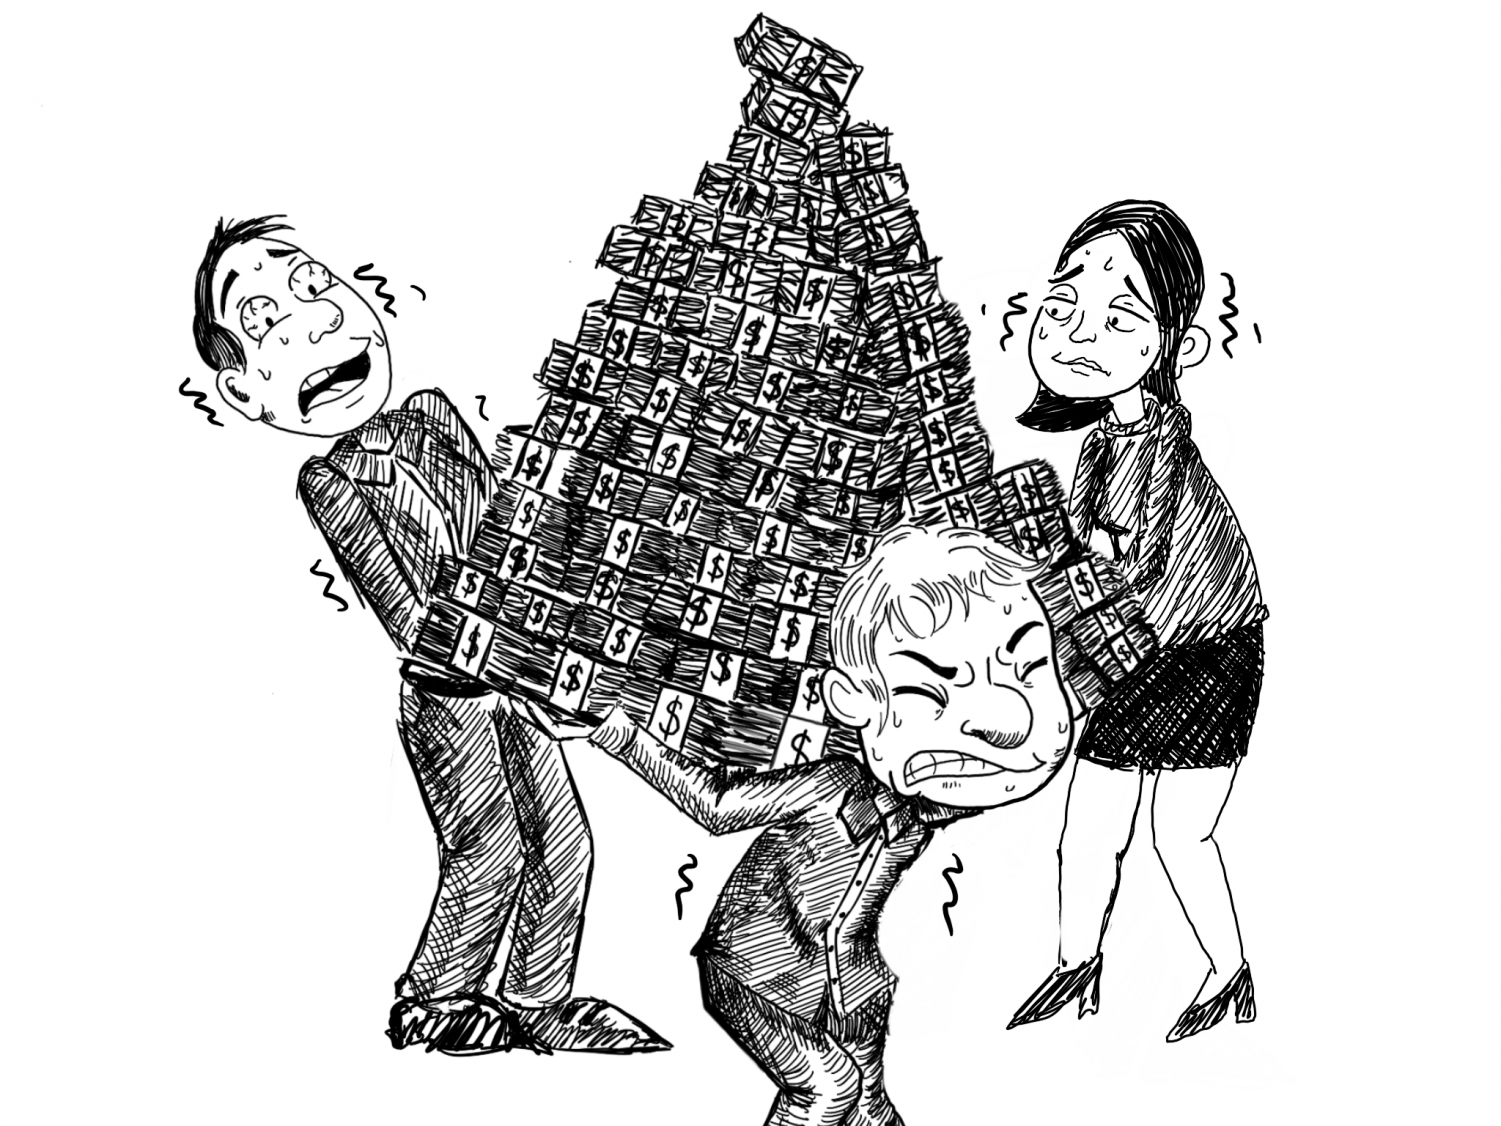 Cheryl Jarvis said college students likely try pyramid schemes because they are